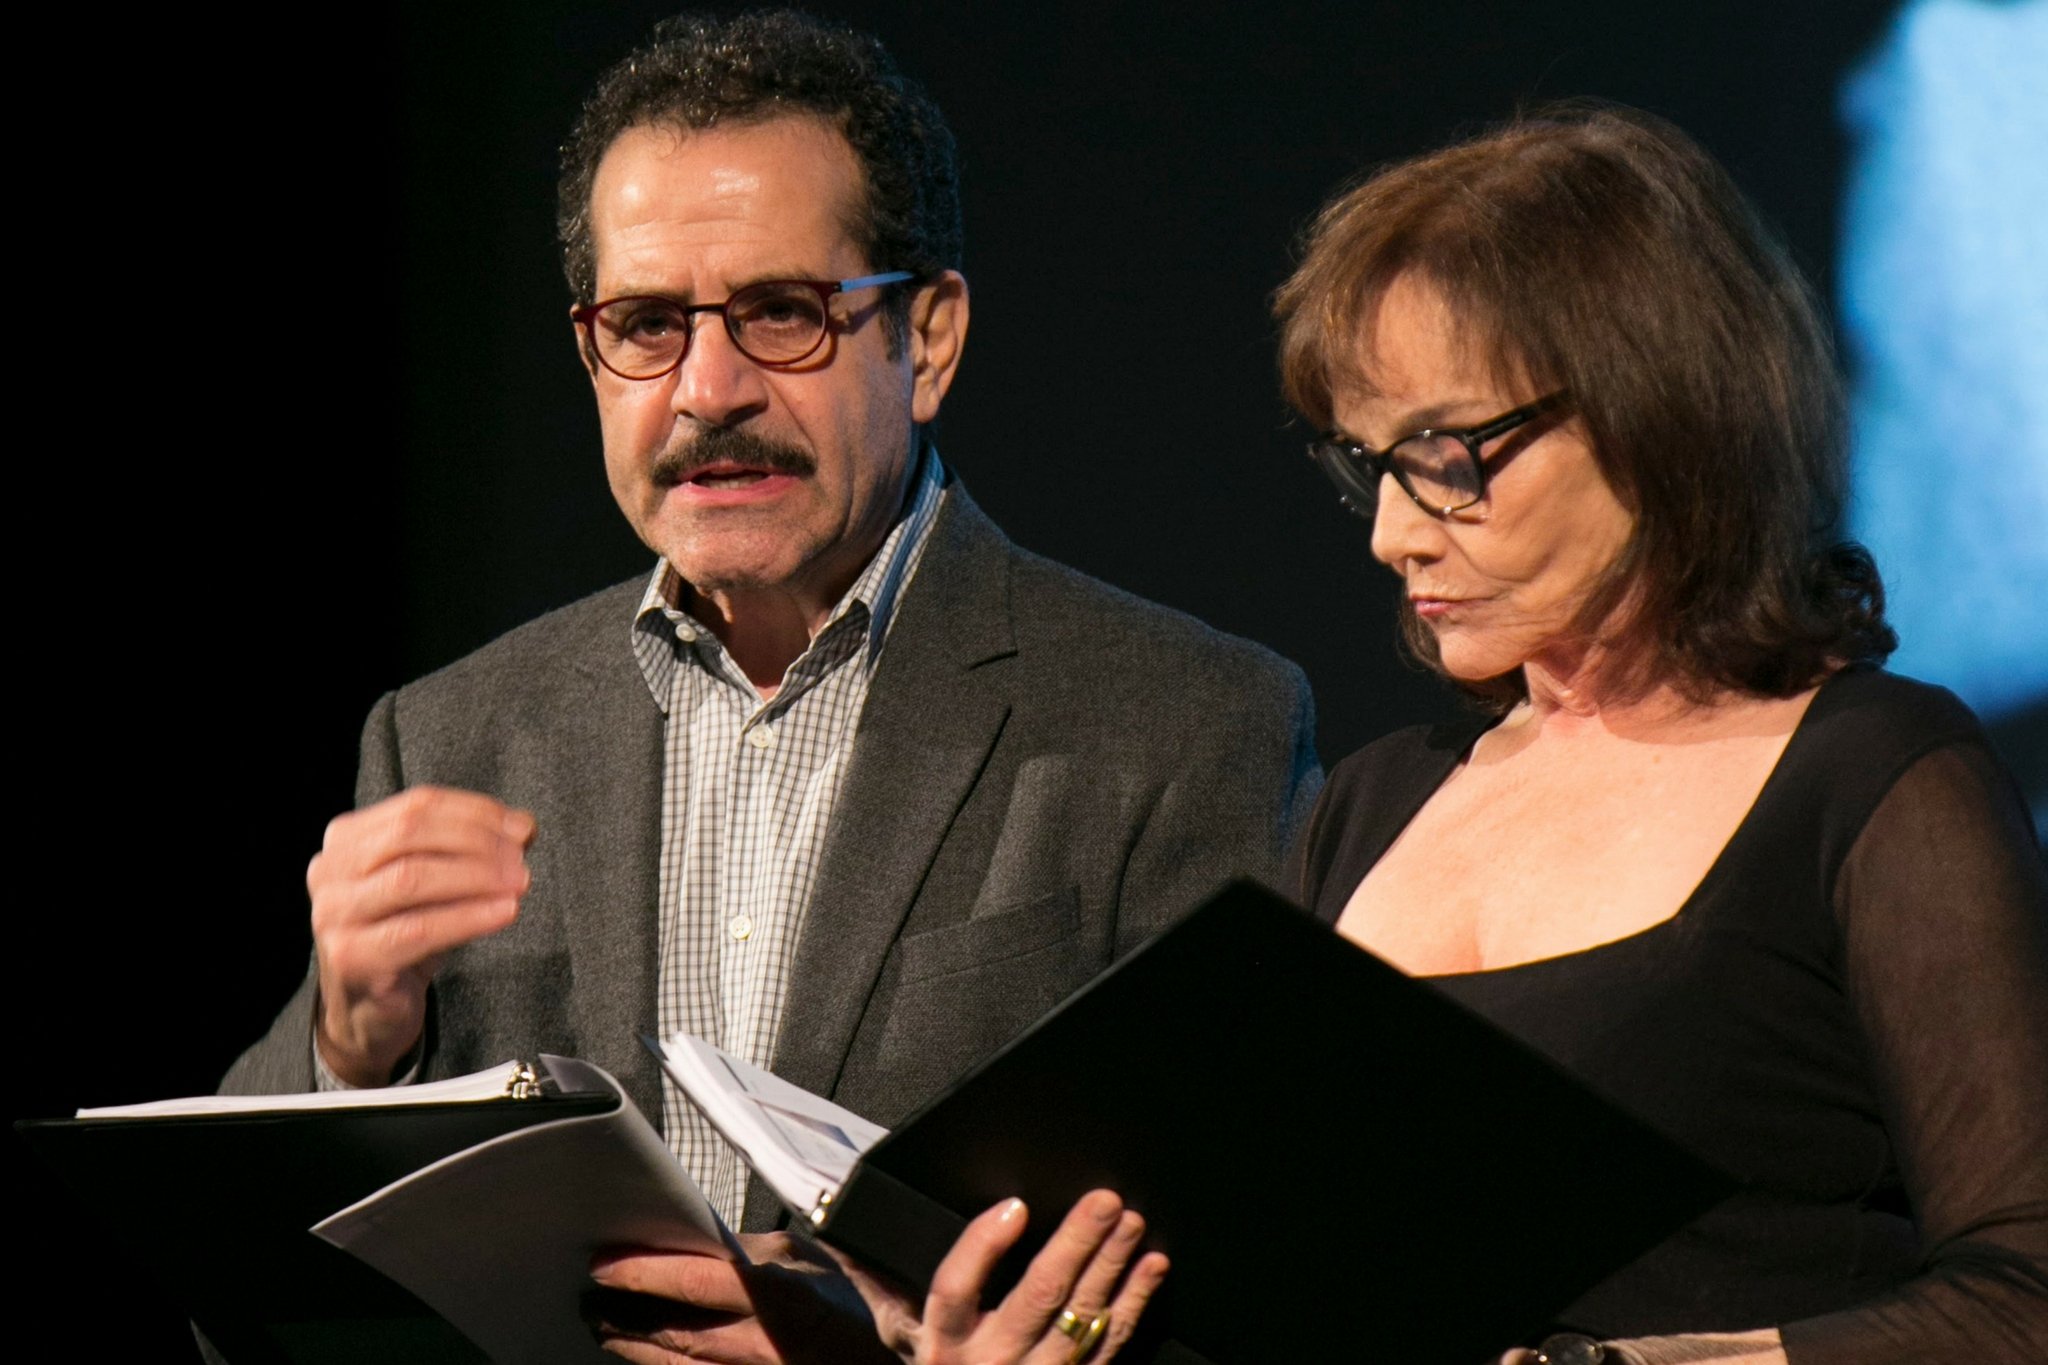 Tony Shalhoub (Man) and Brooke Adams (Woman) in Fear and Misery in the Third Reich, Theatre in the Rough, 2017-Photo by Evgenia Eliseeva